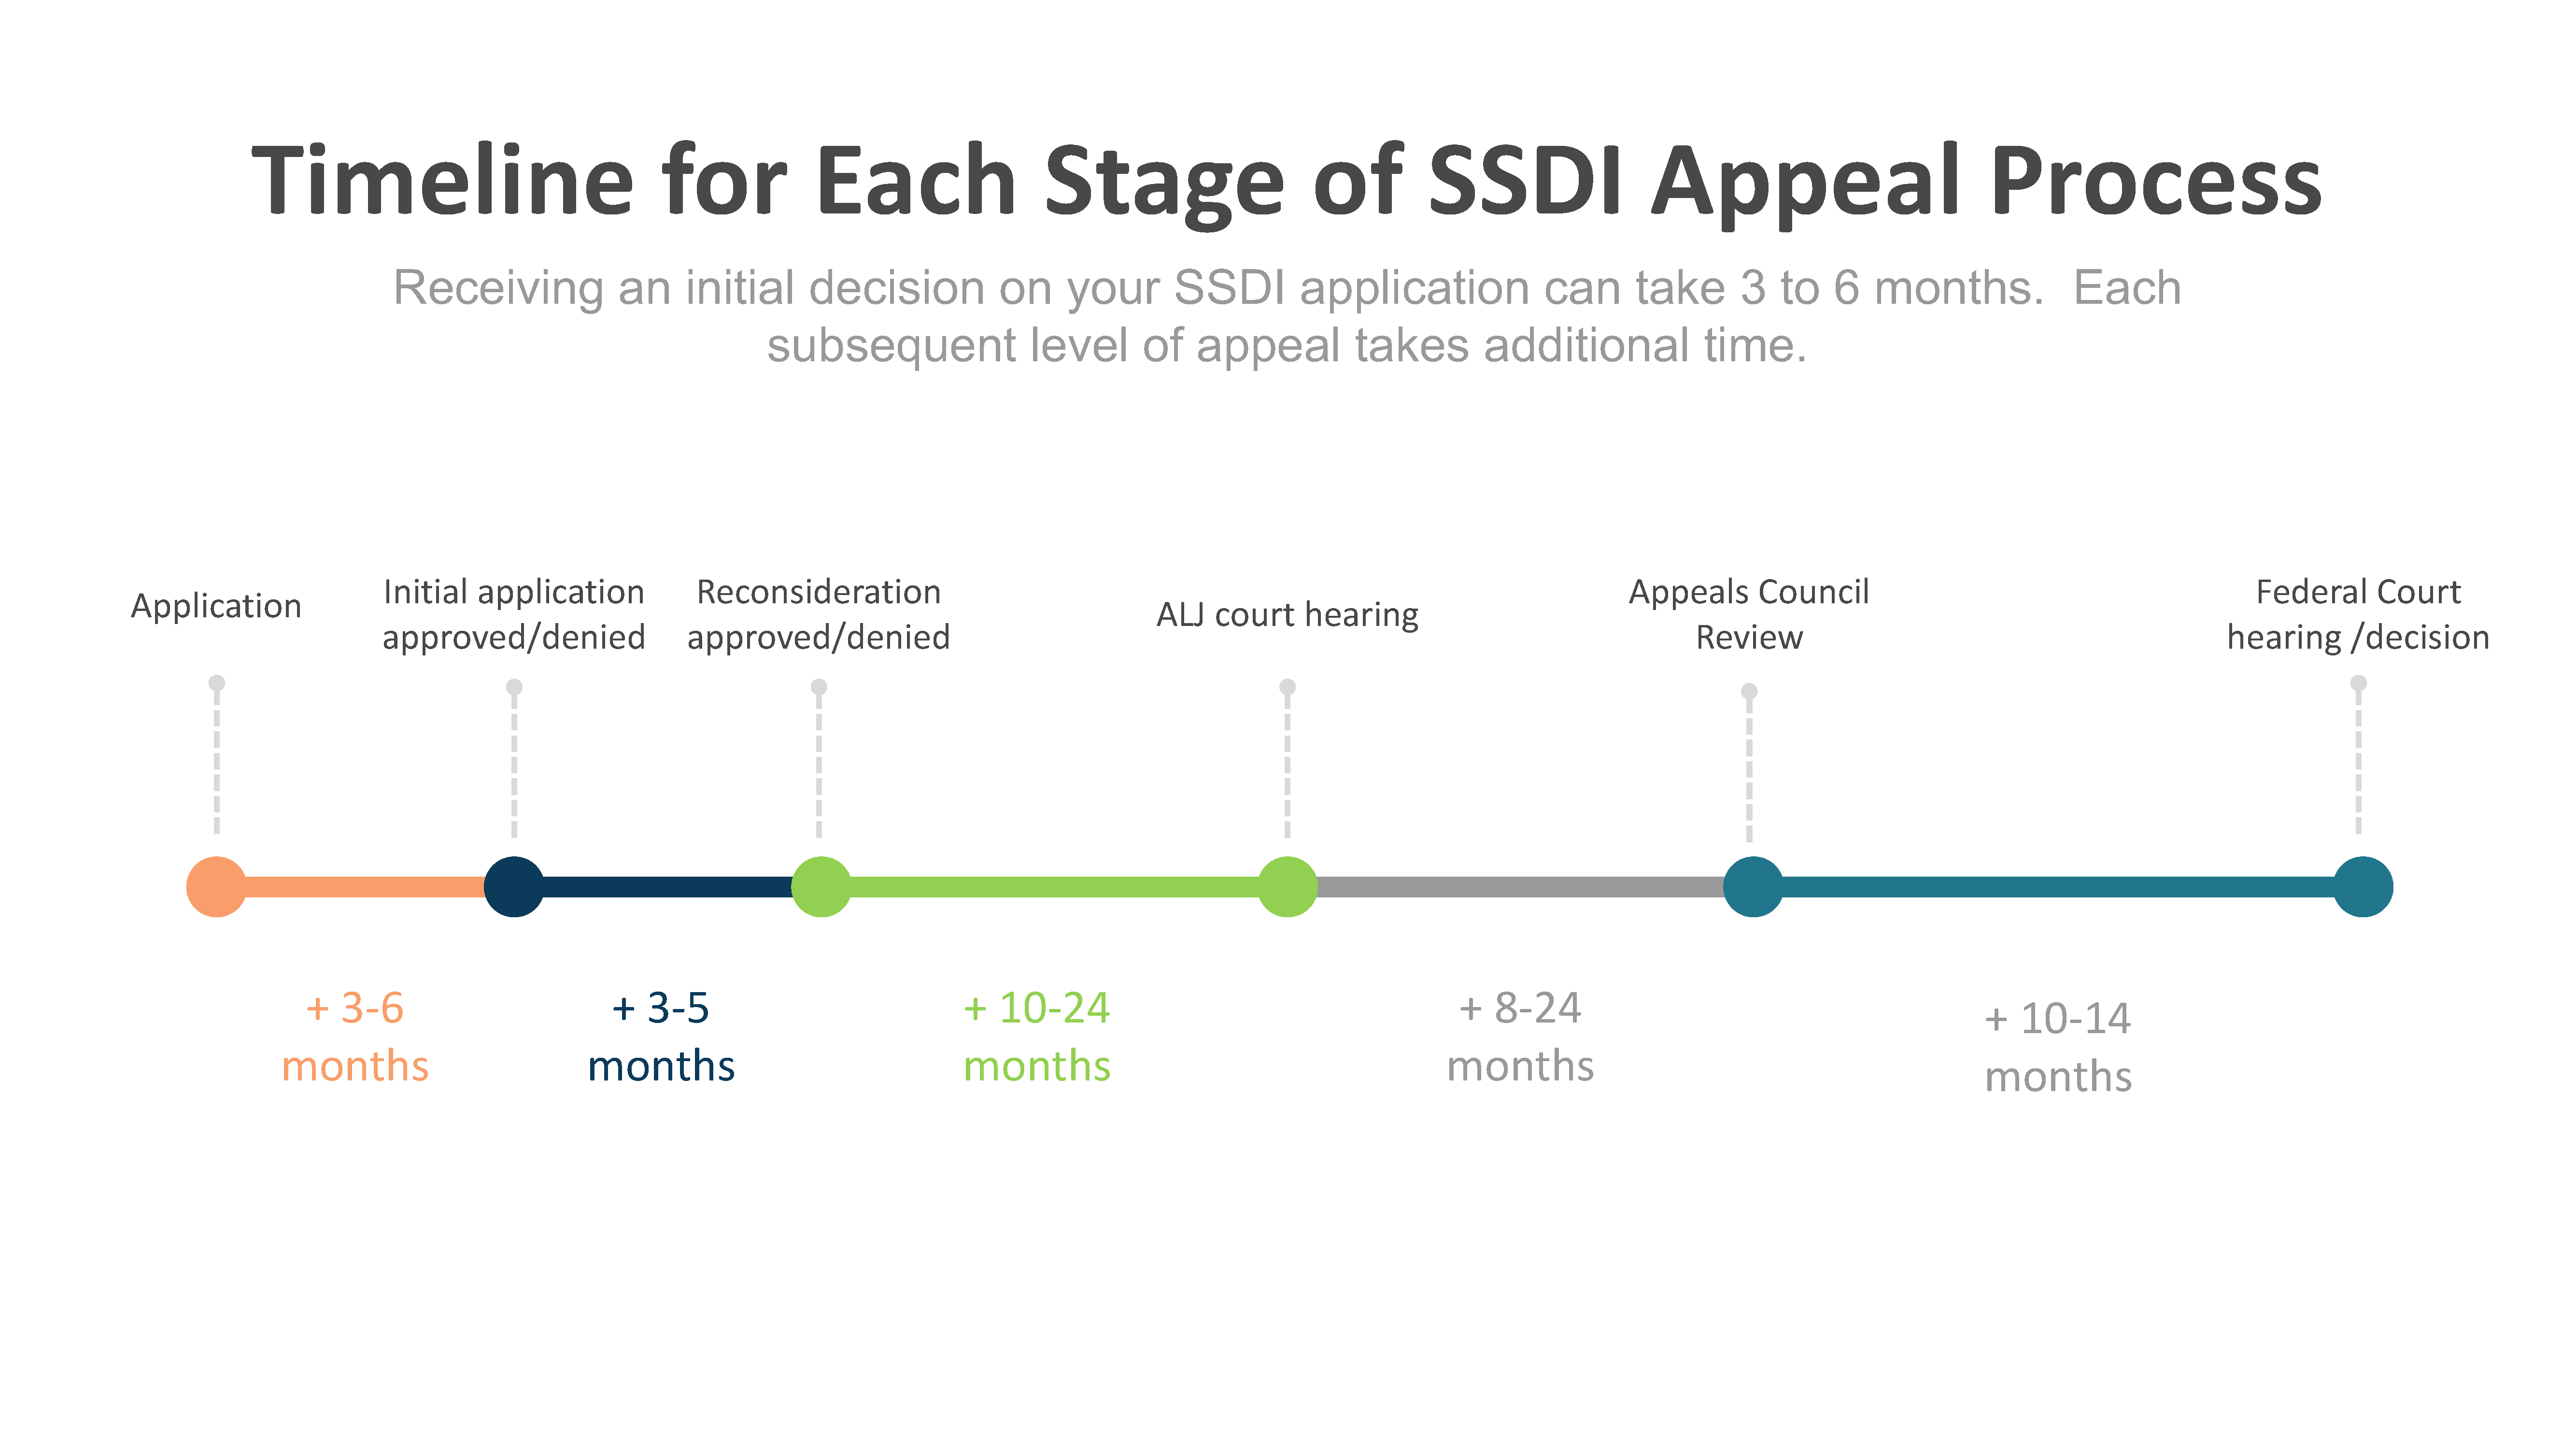 Timeline of the SSDI appeal process